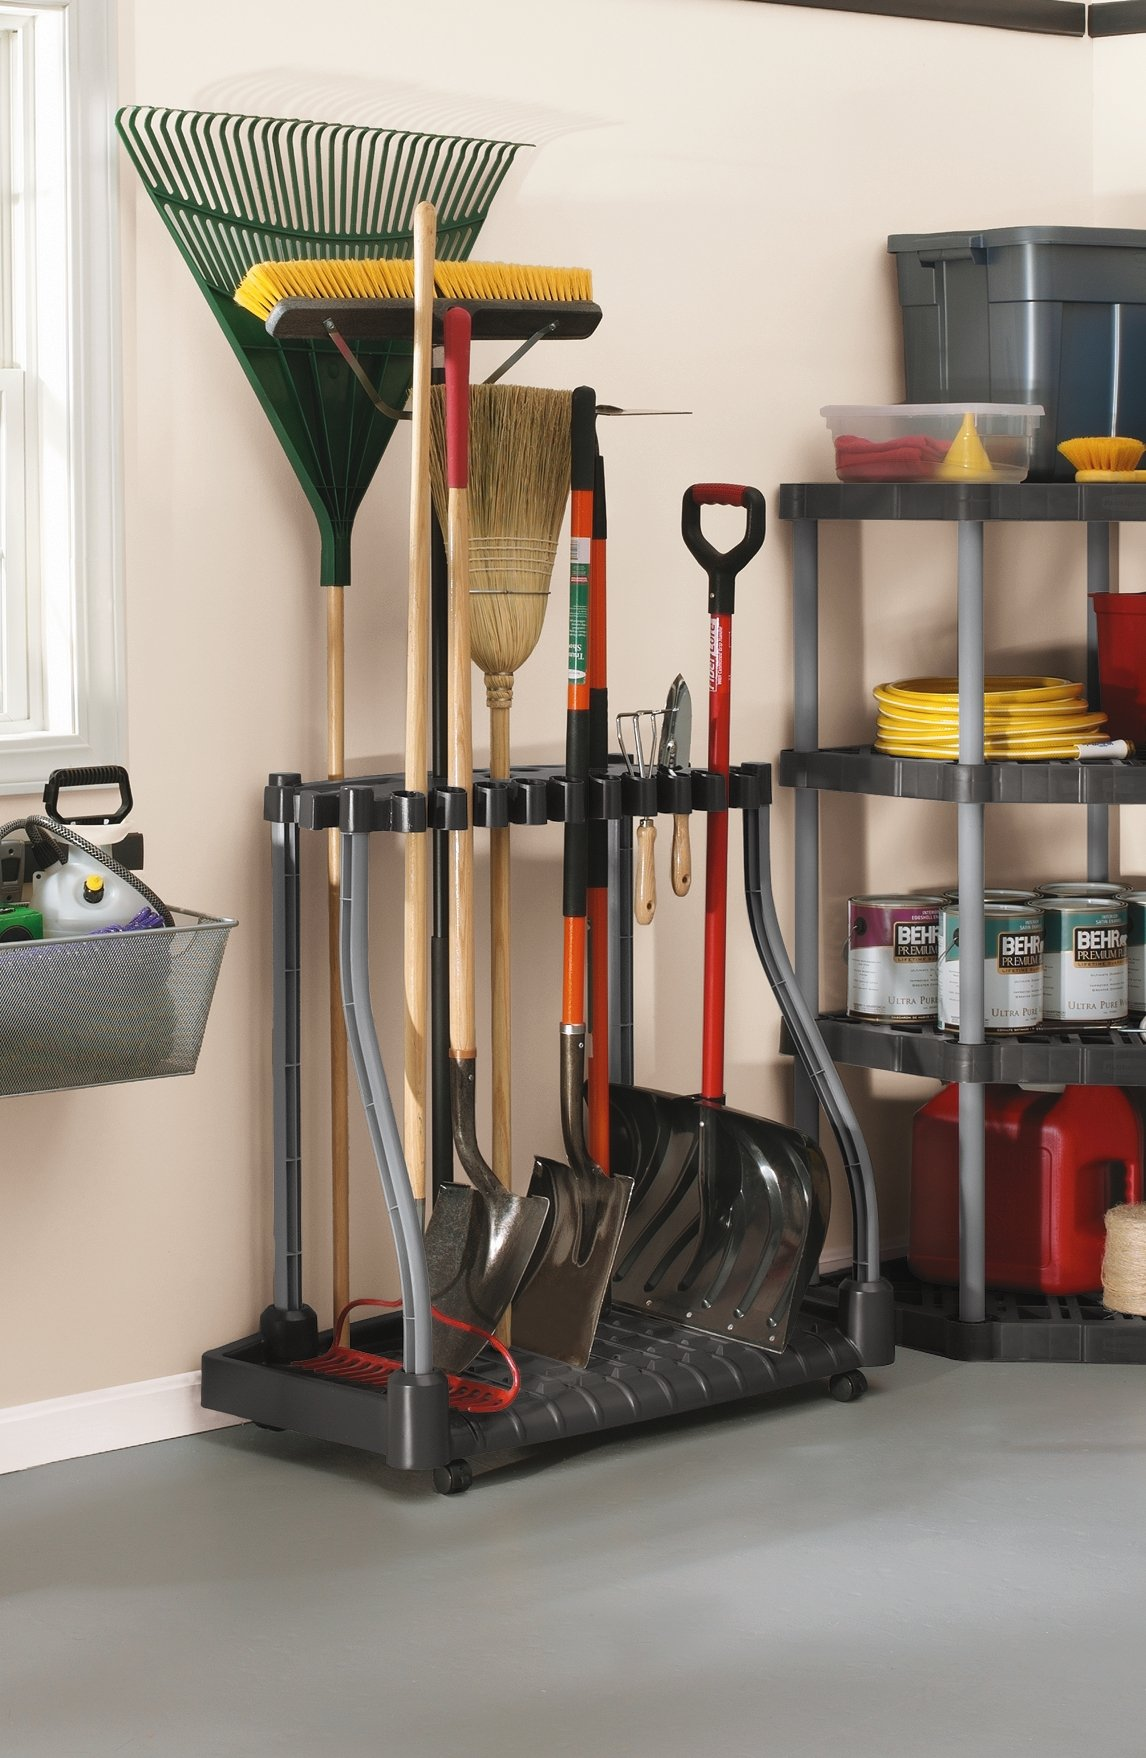 Rubbermaid Deluxe Tool Tower, Garage Storage, Holds 40 Tools, Black (FG5E2800MICHR) by Rubbermaid